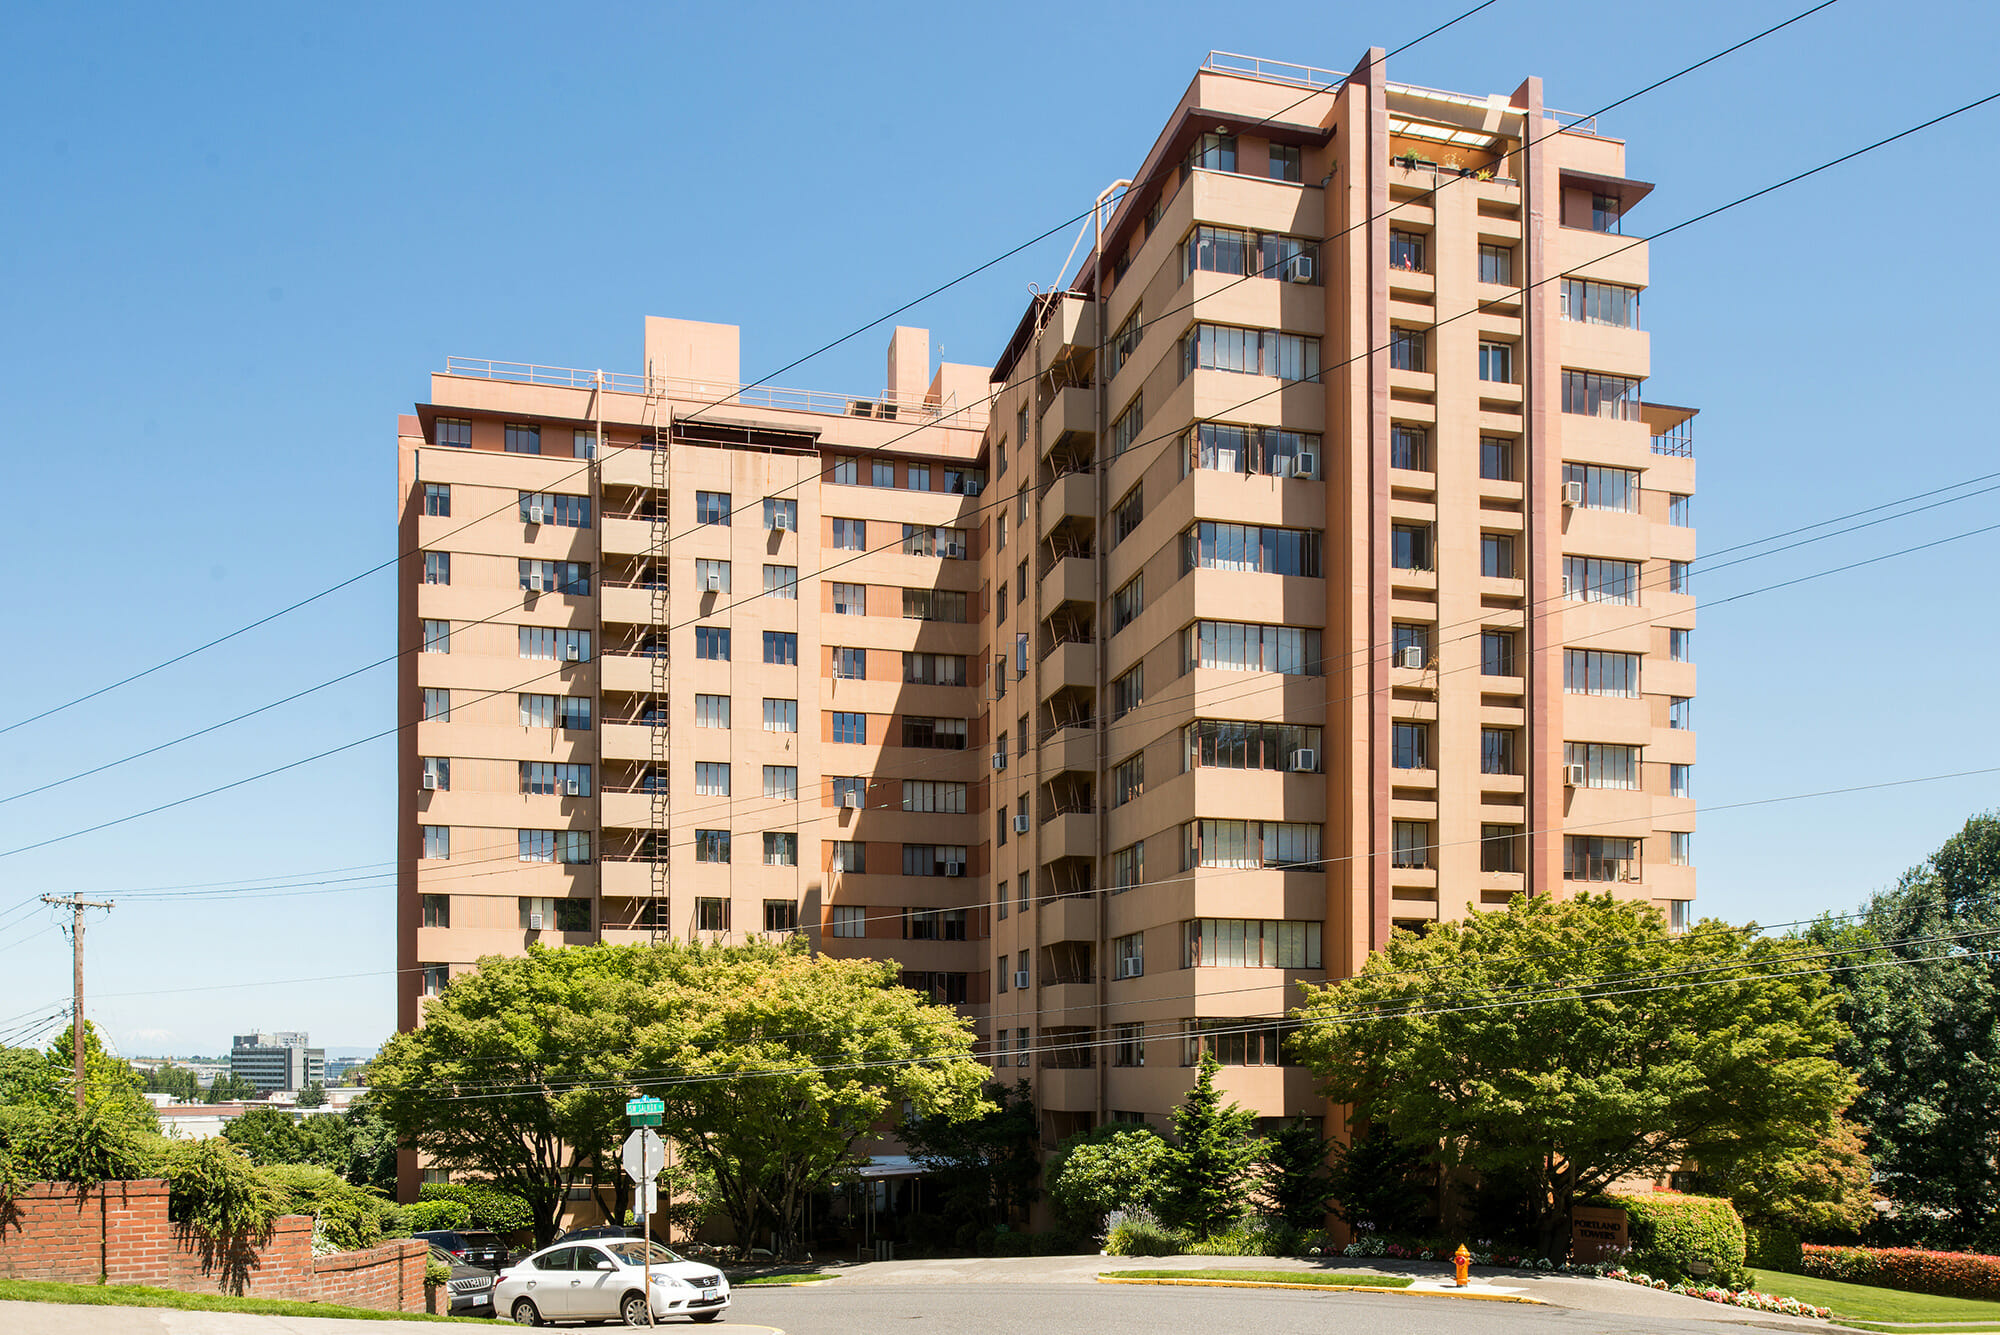 Located in Goose Hollow, Portland Towers offers apartments with views of the city and close proximity to Downtown, the Pearl District, and 23rd Avenue.